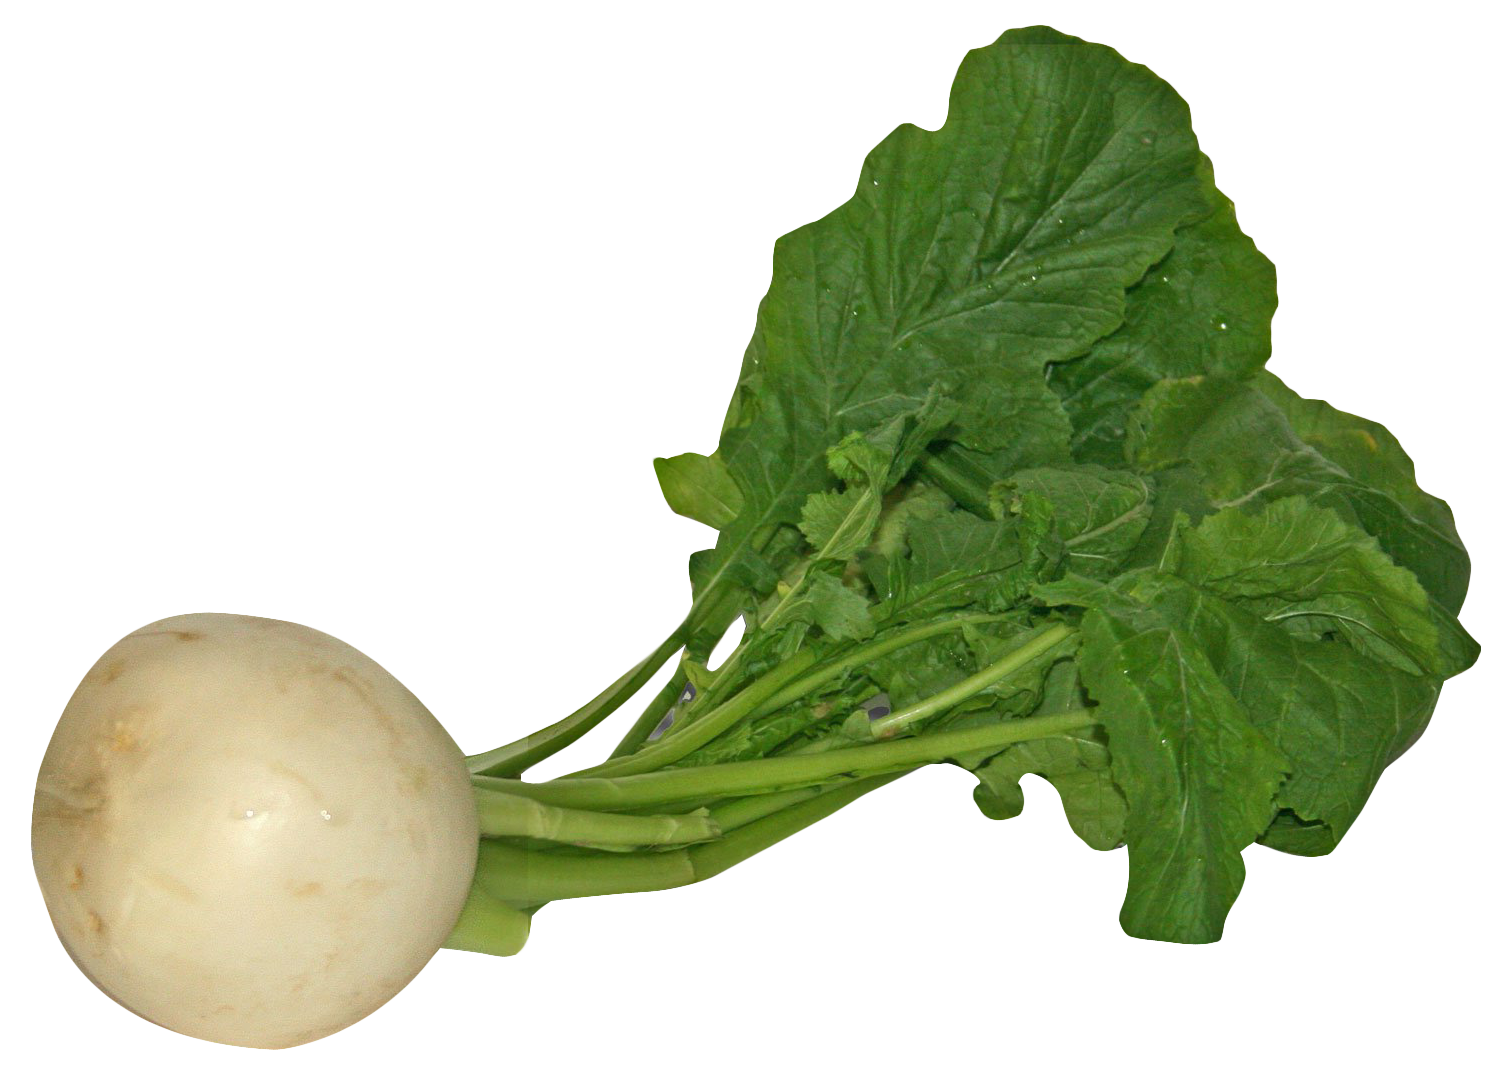 Vegetables clipart turnip. Png image purepng free